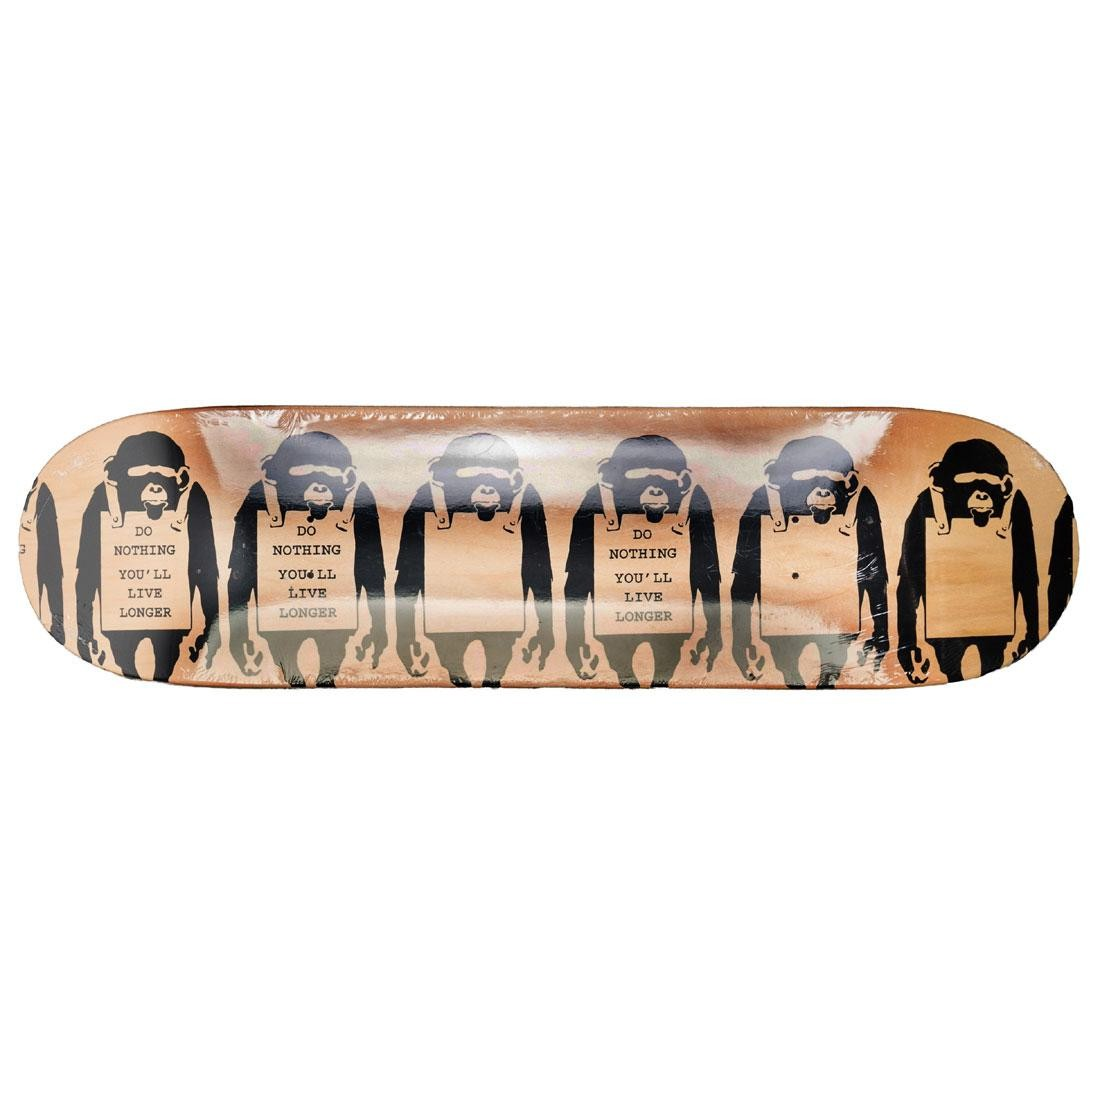 Medicom x SYNC Brandalism Monkey Sign Skateboard Deck (tan)